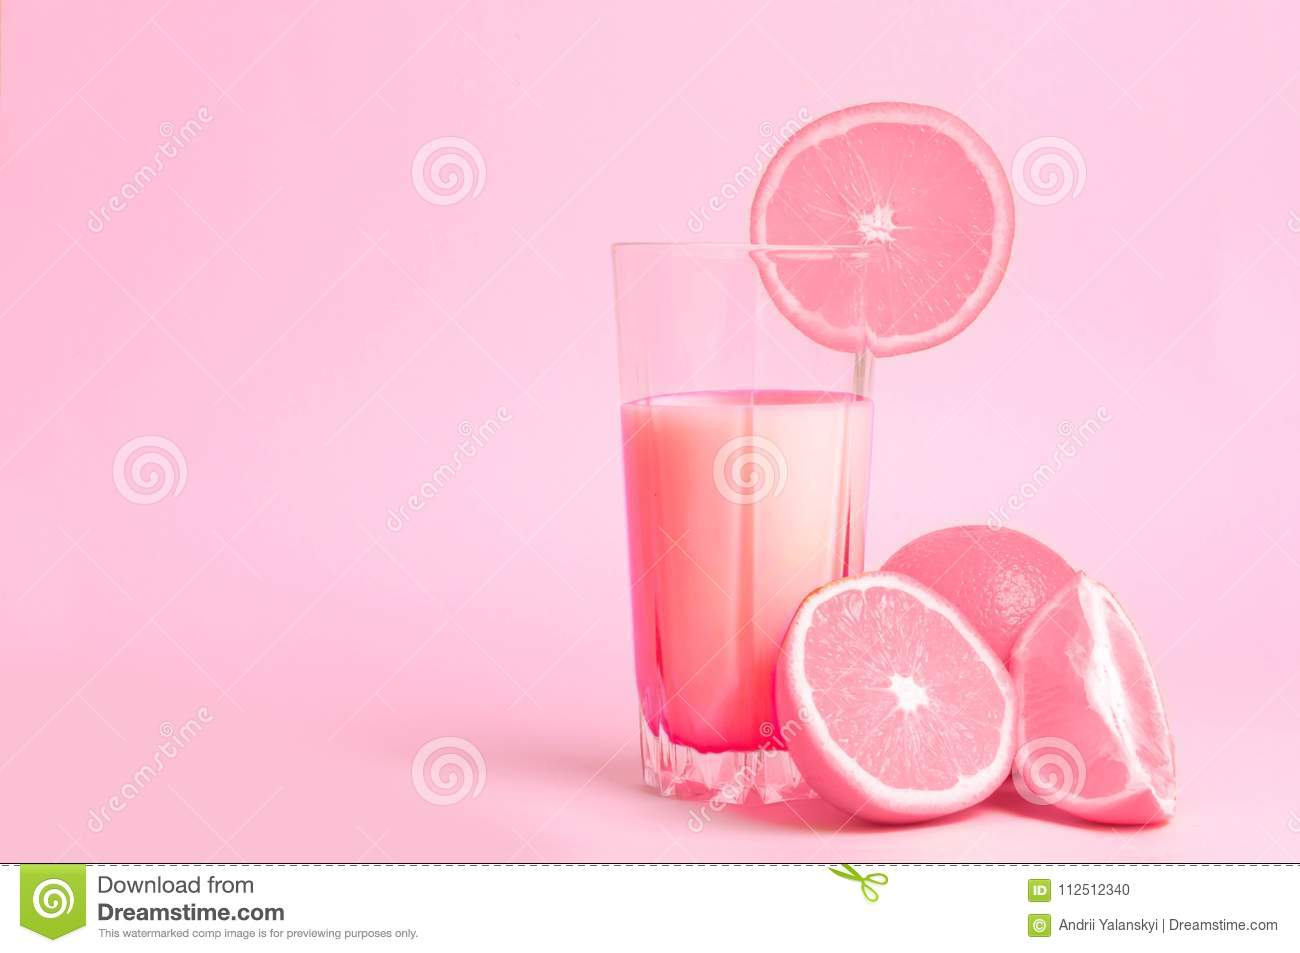 A glass with pink orange juice with the cut oranges on a pink background. Juicy color scale, pin up, pop up styles. Food for break